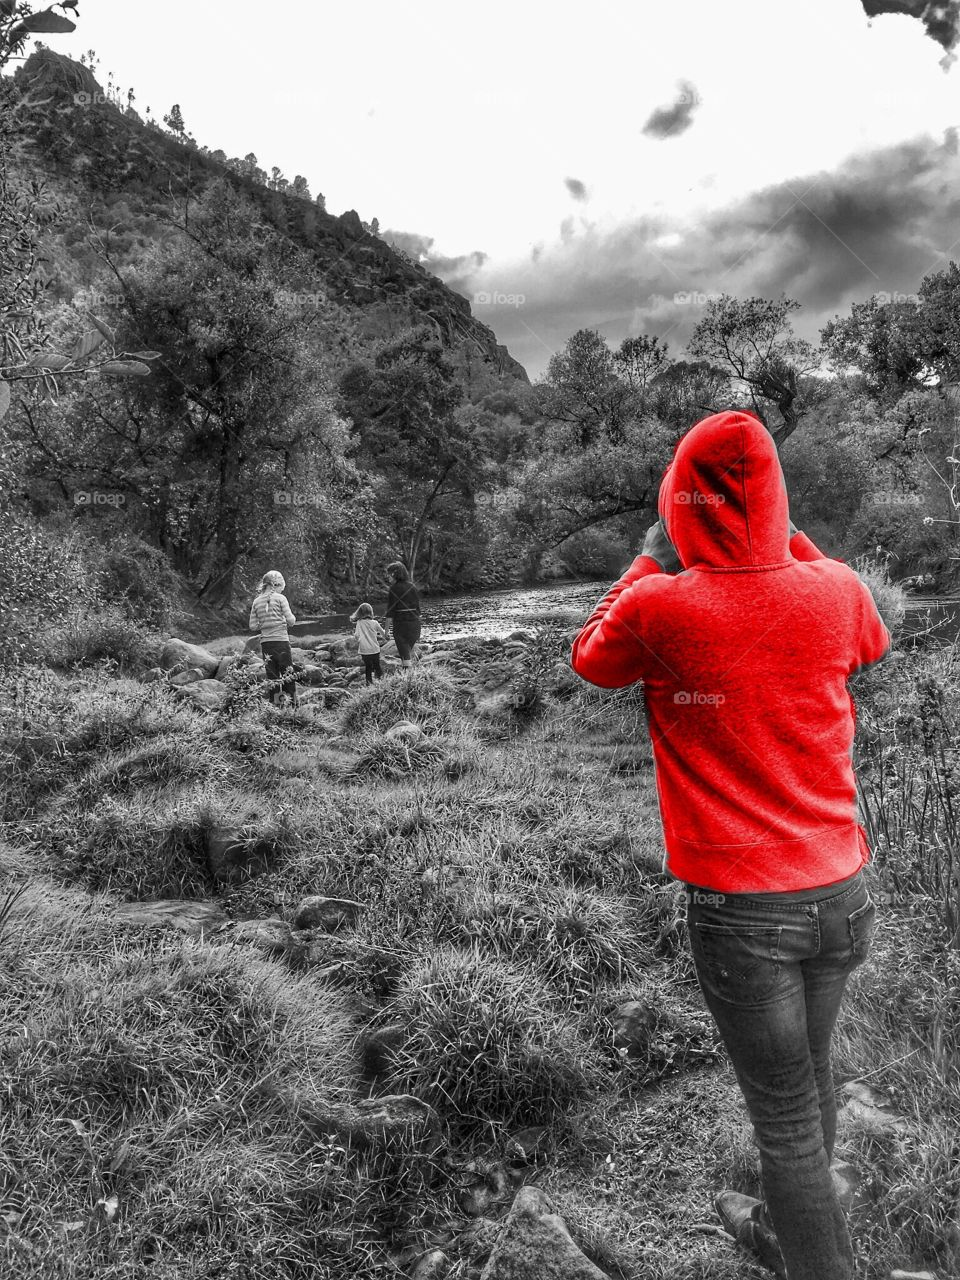 Red hoodie on black and white photo.